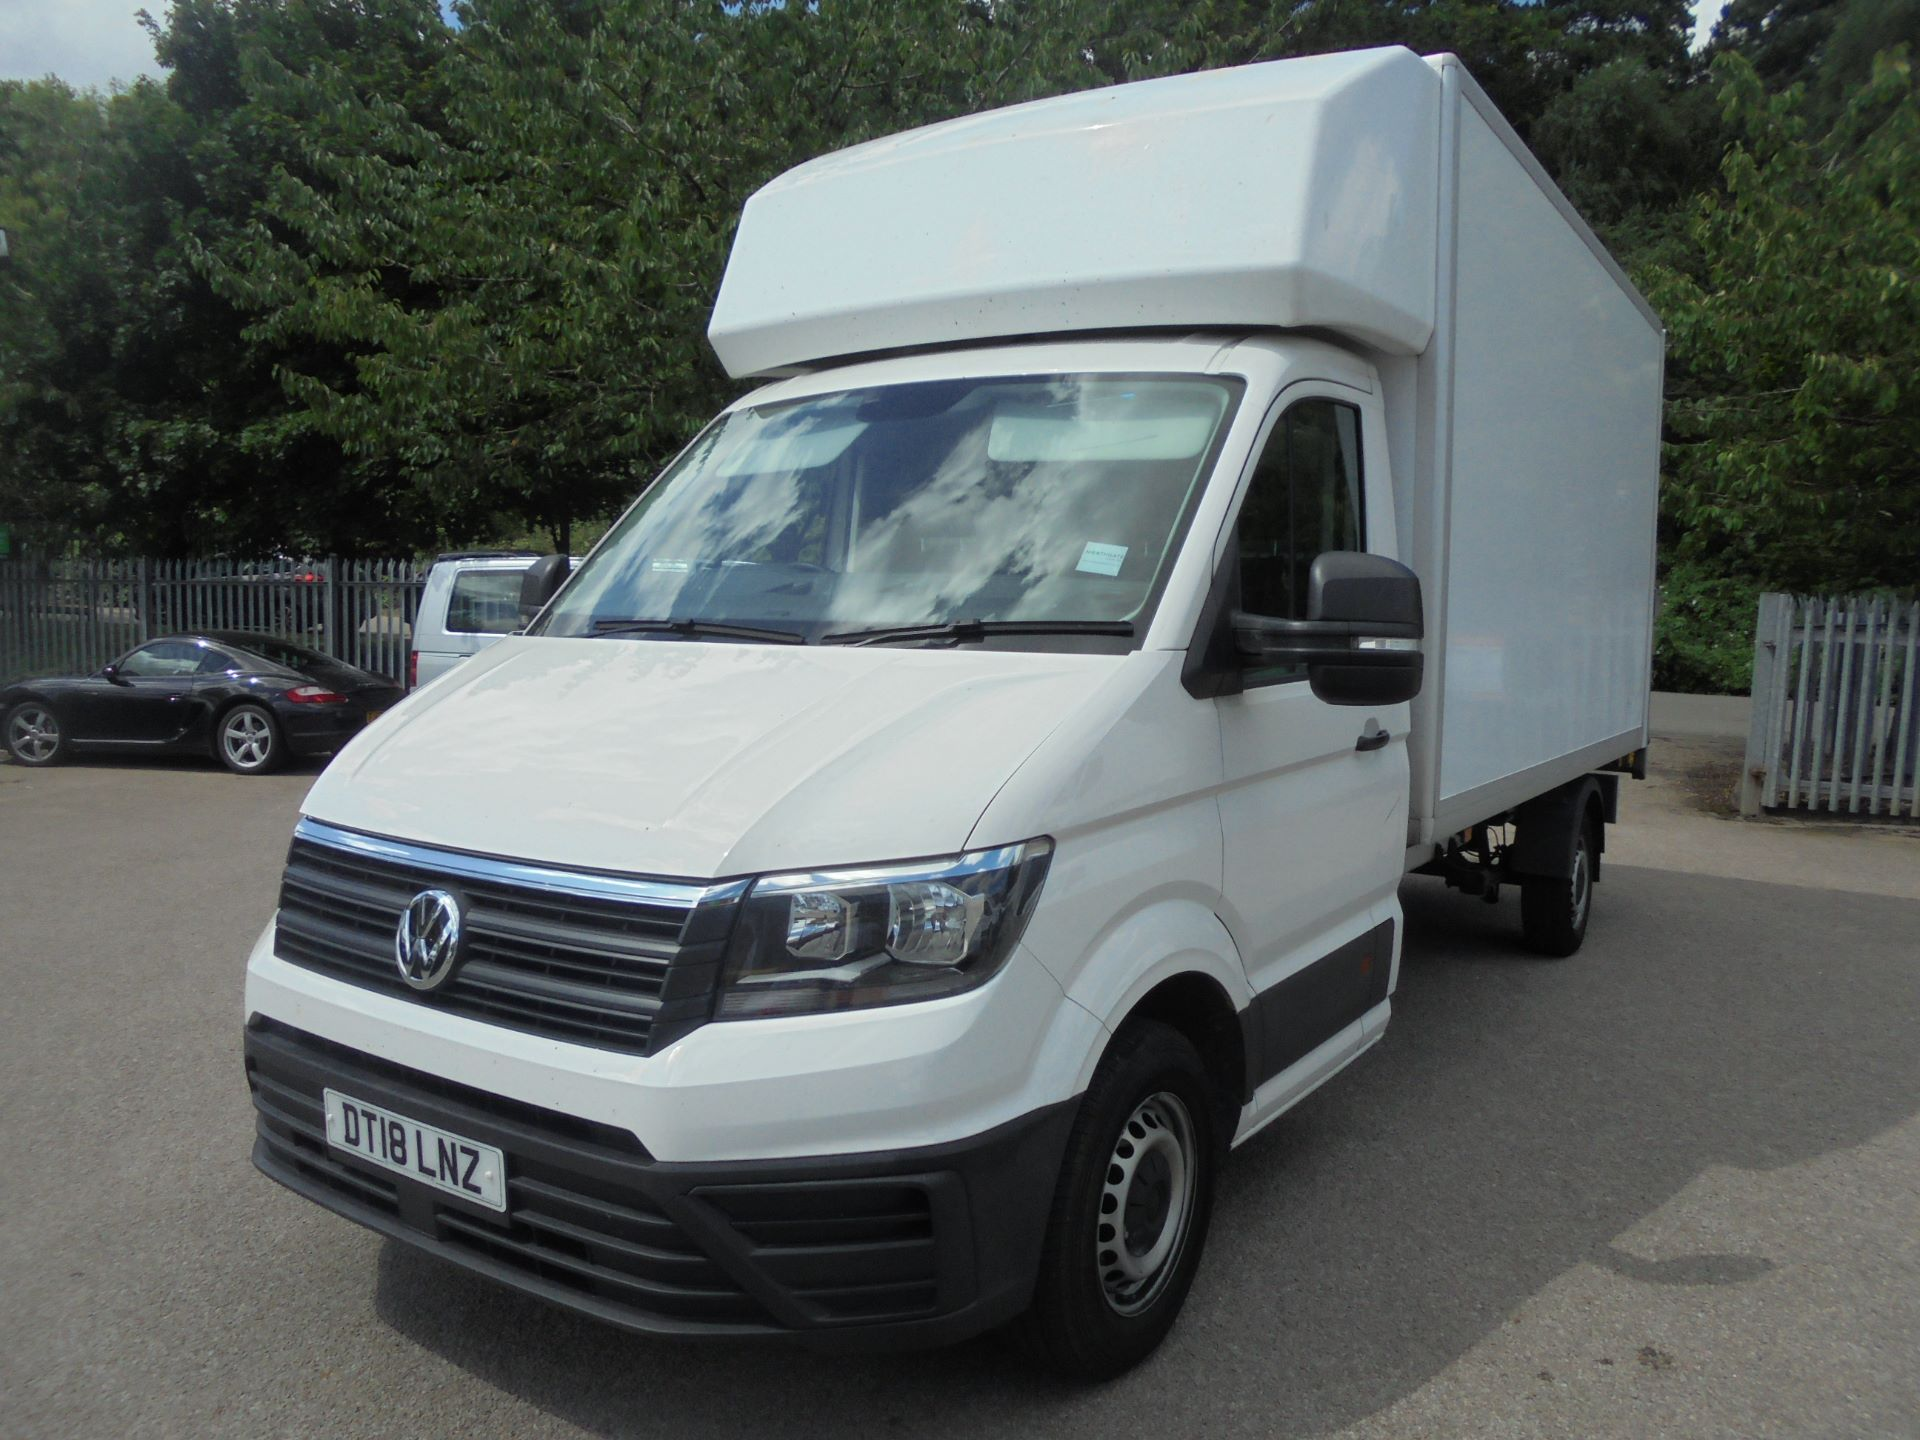 2018 Volkswagen Crafter 2.0 Tdi 140Ps Startline Chassis Cab (DT18LNZ) Thumbnail 2